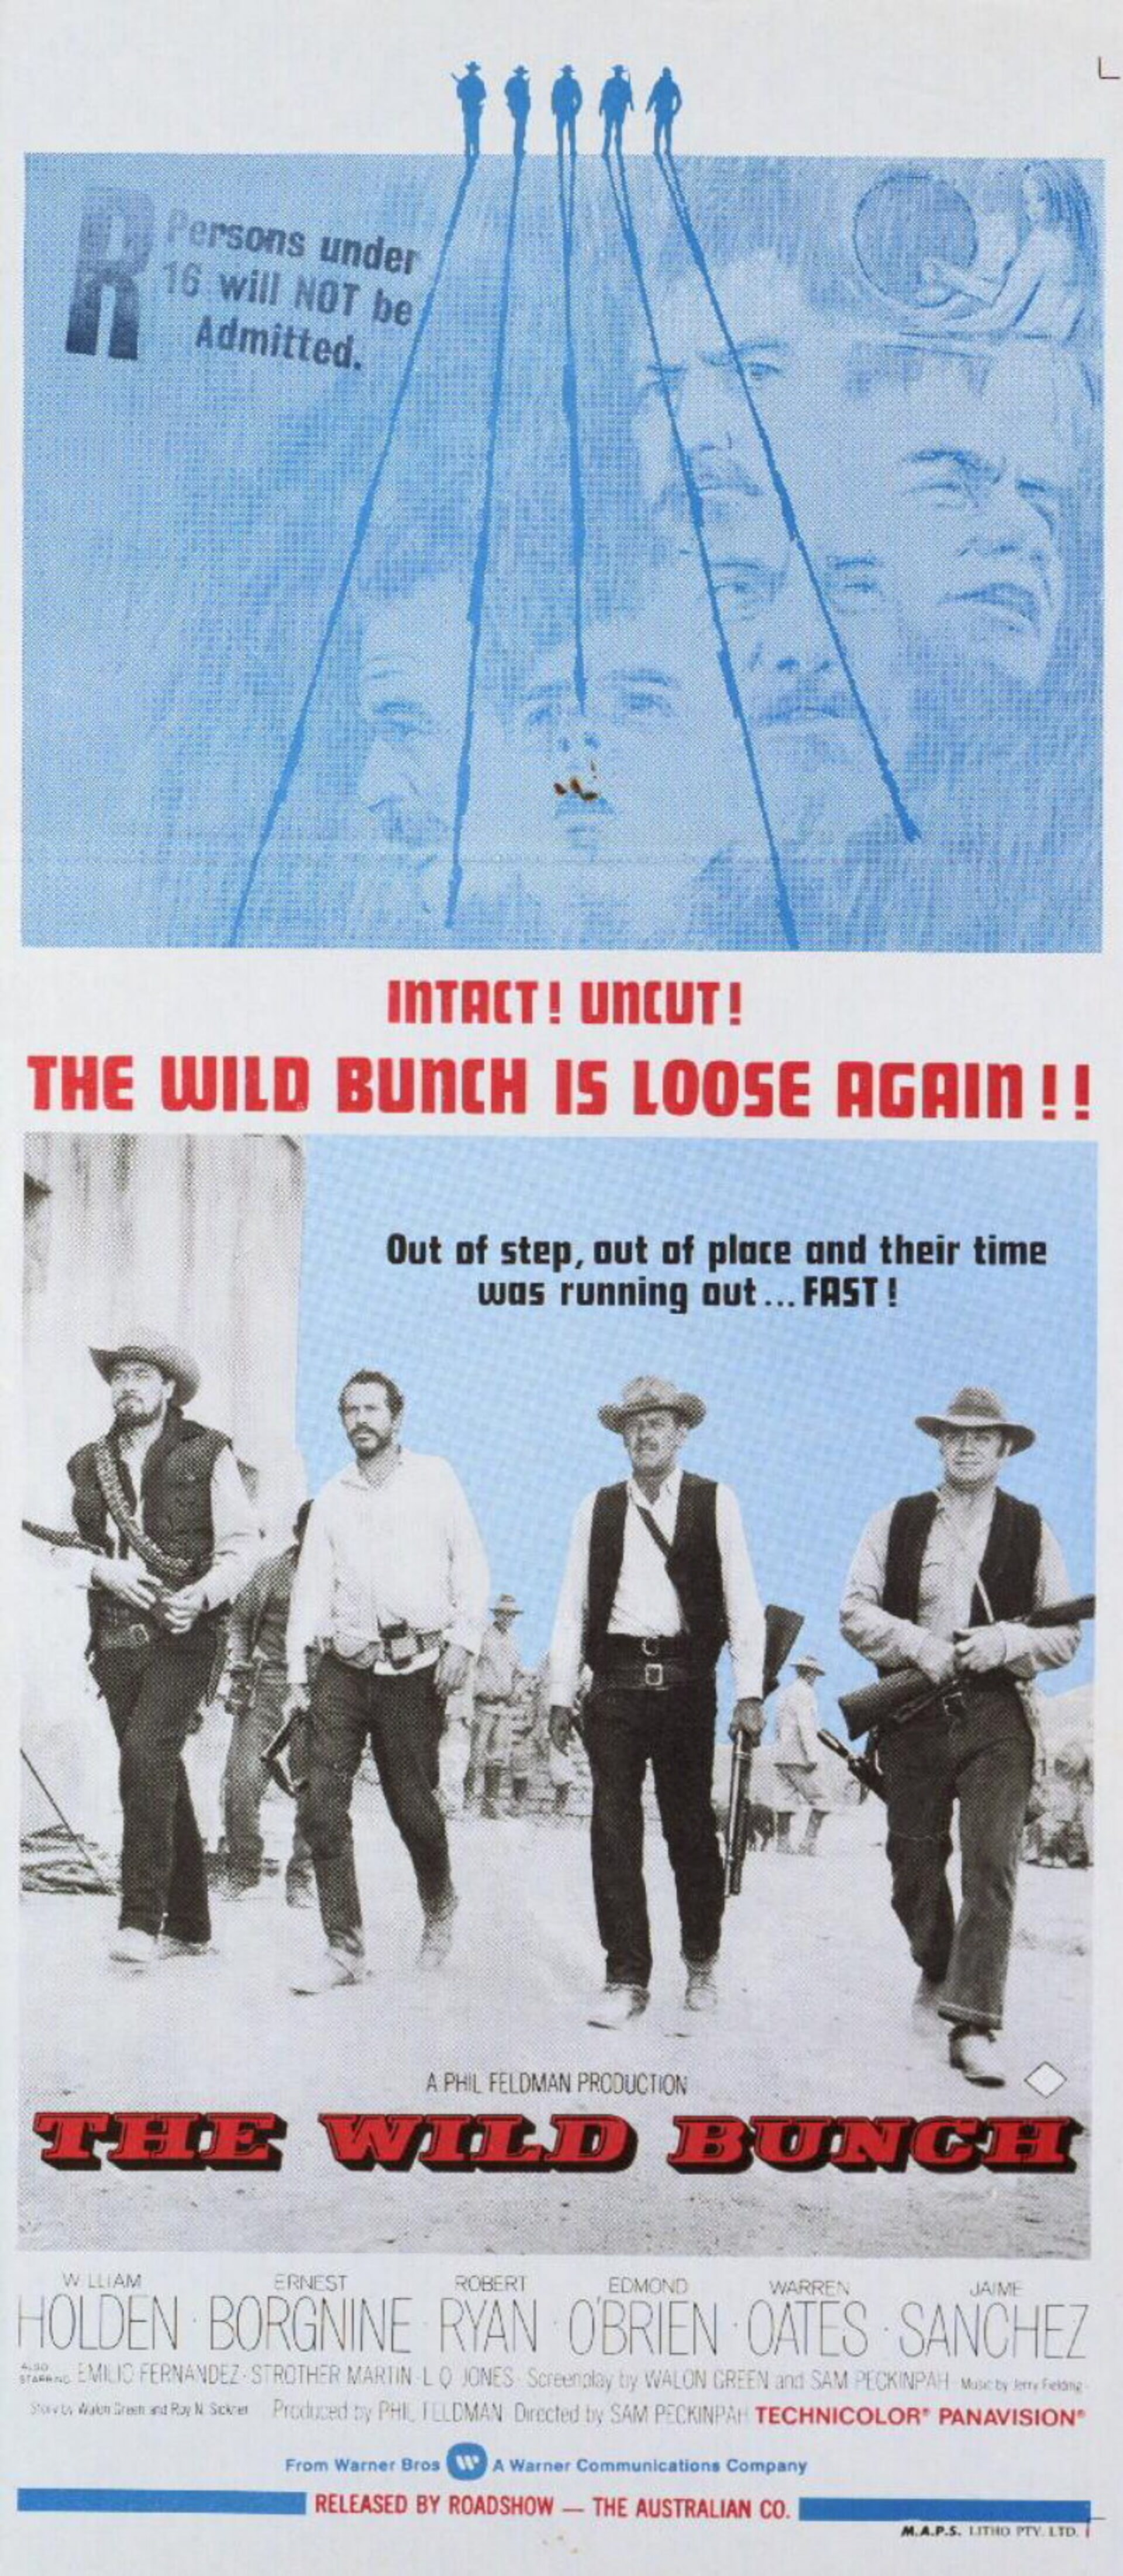 The Wild Bunch - Poster 11